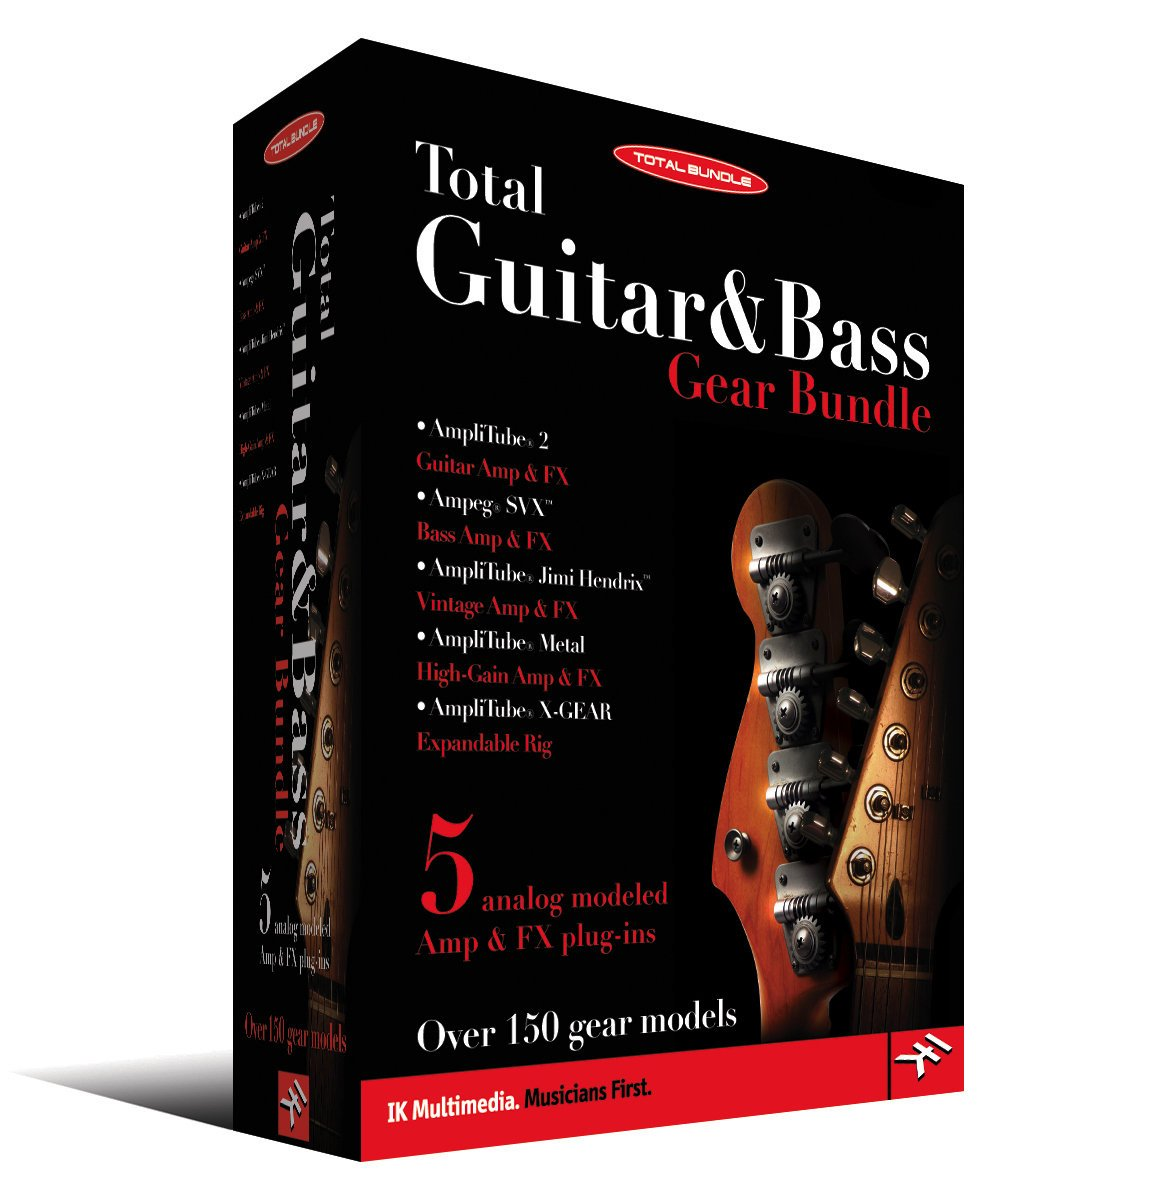 IK Multimedia Total Guitar & Bass Gear Bundle